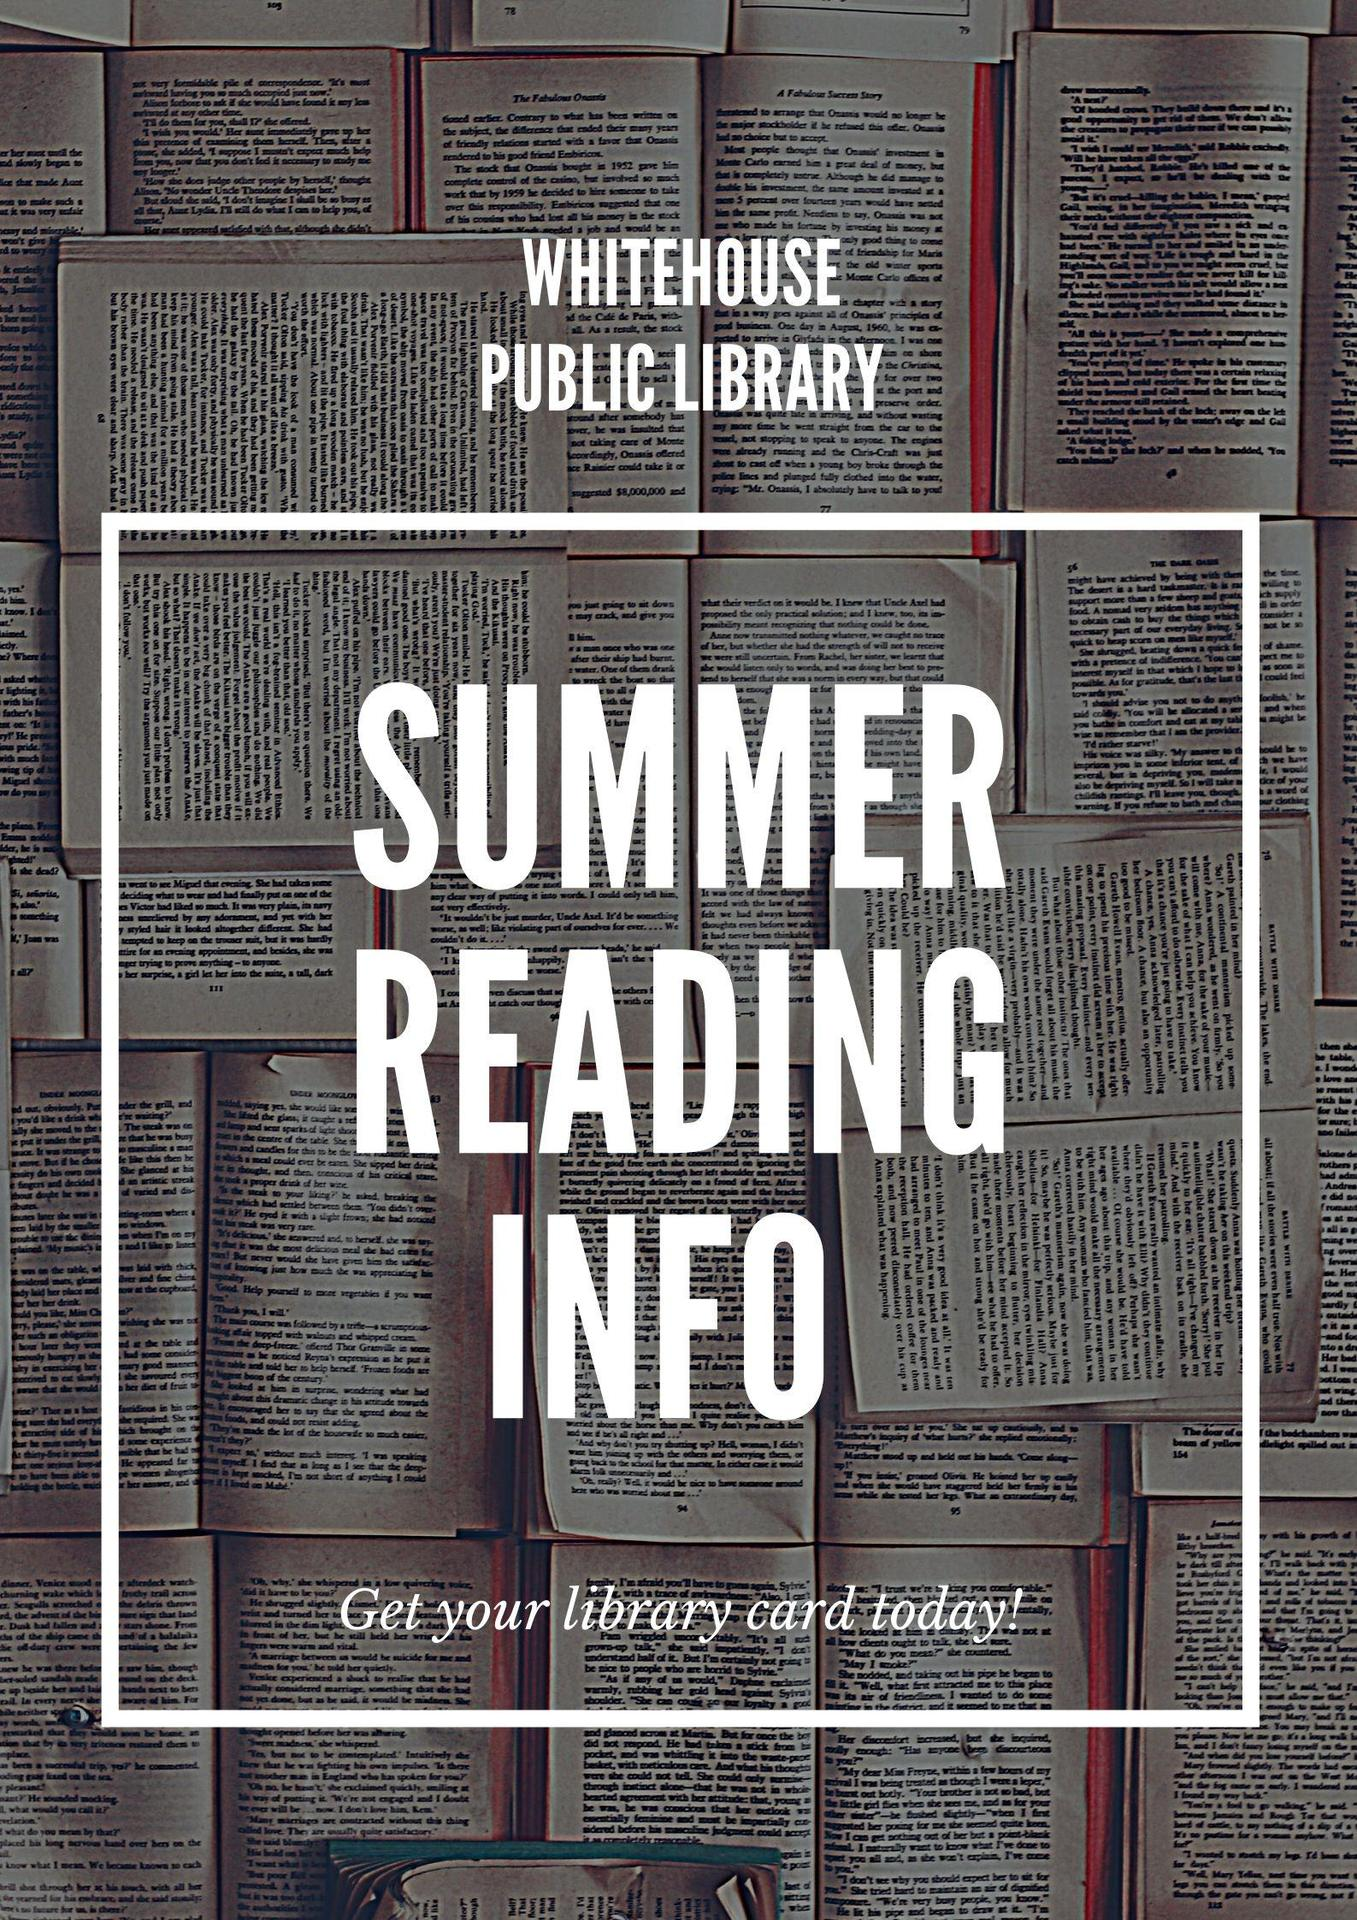 Summer Reading at Whitehouse Public Library